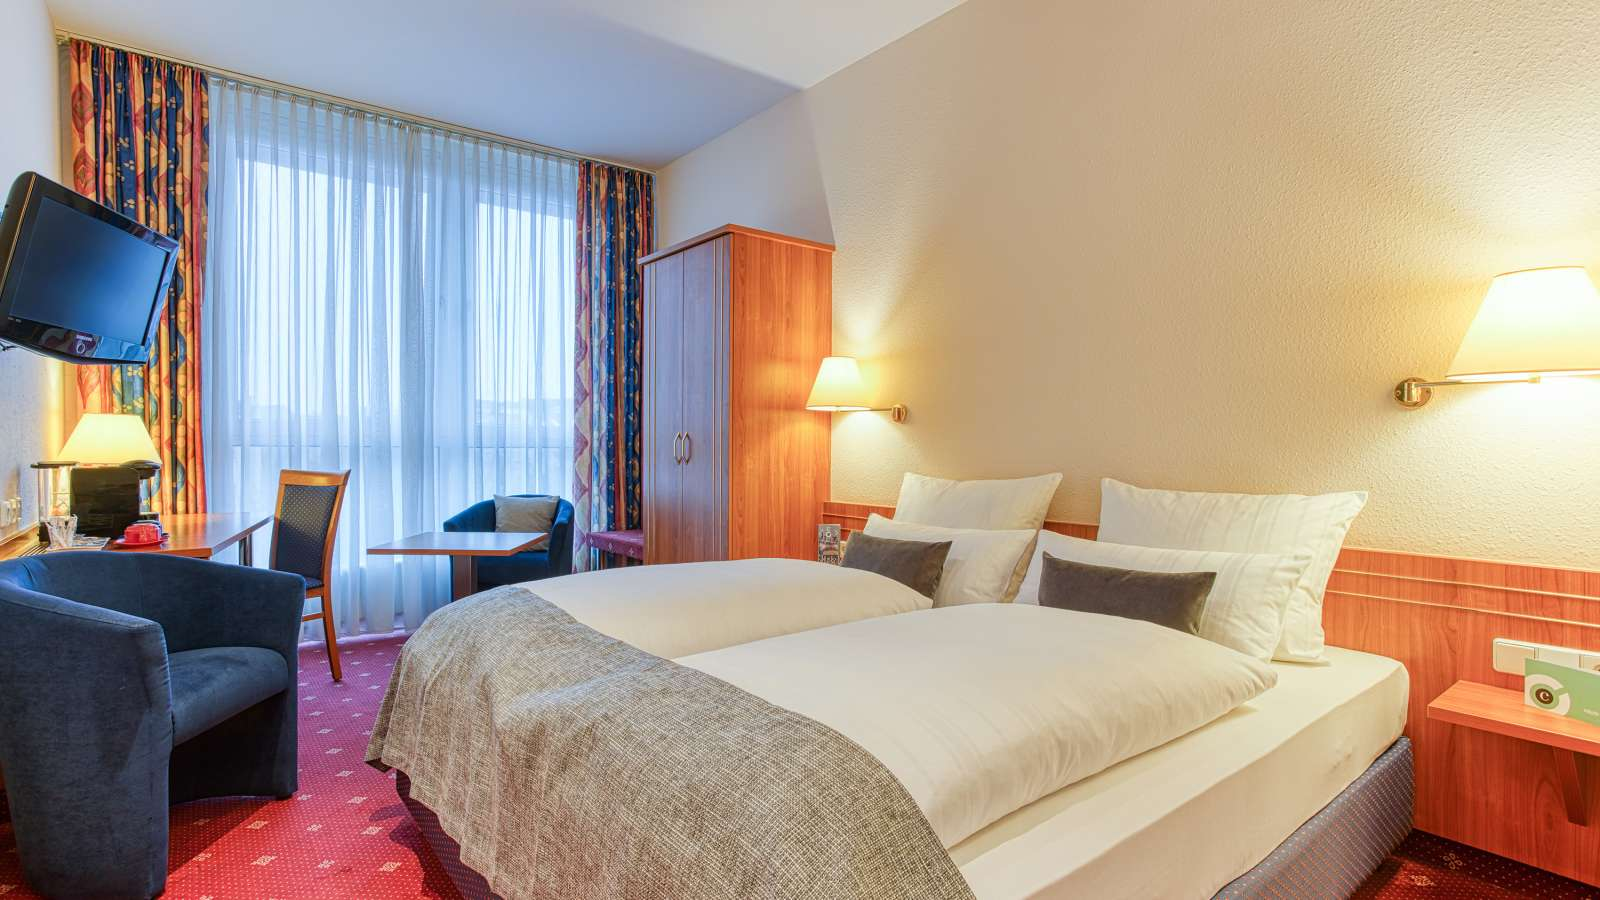 Double Room at Centro Hotel Berlin City West